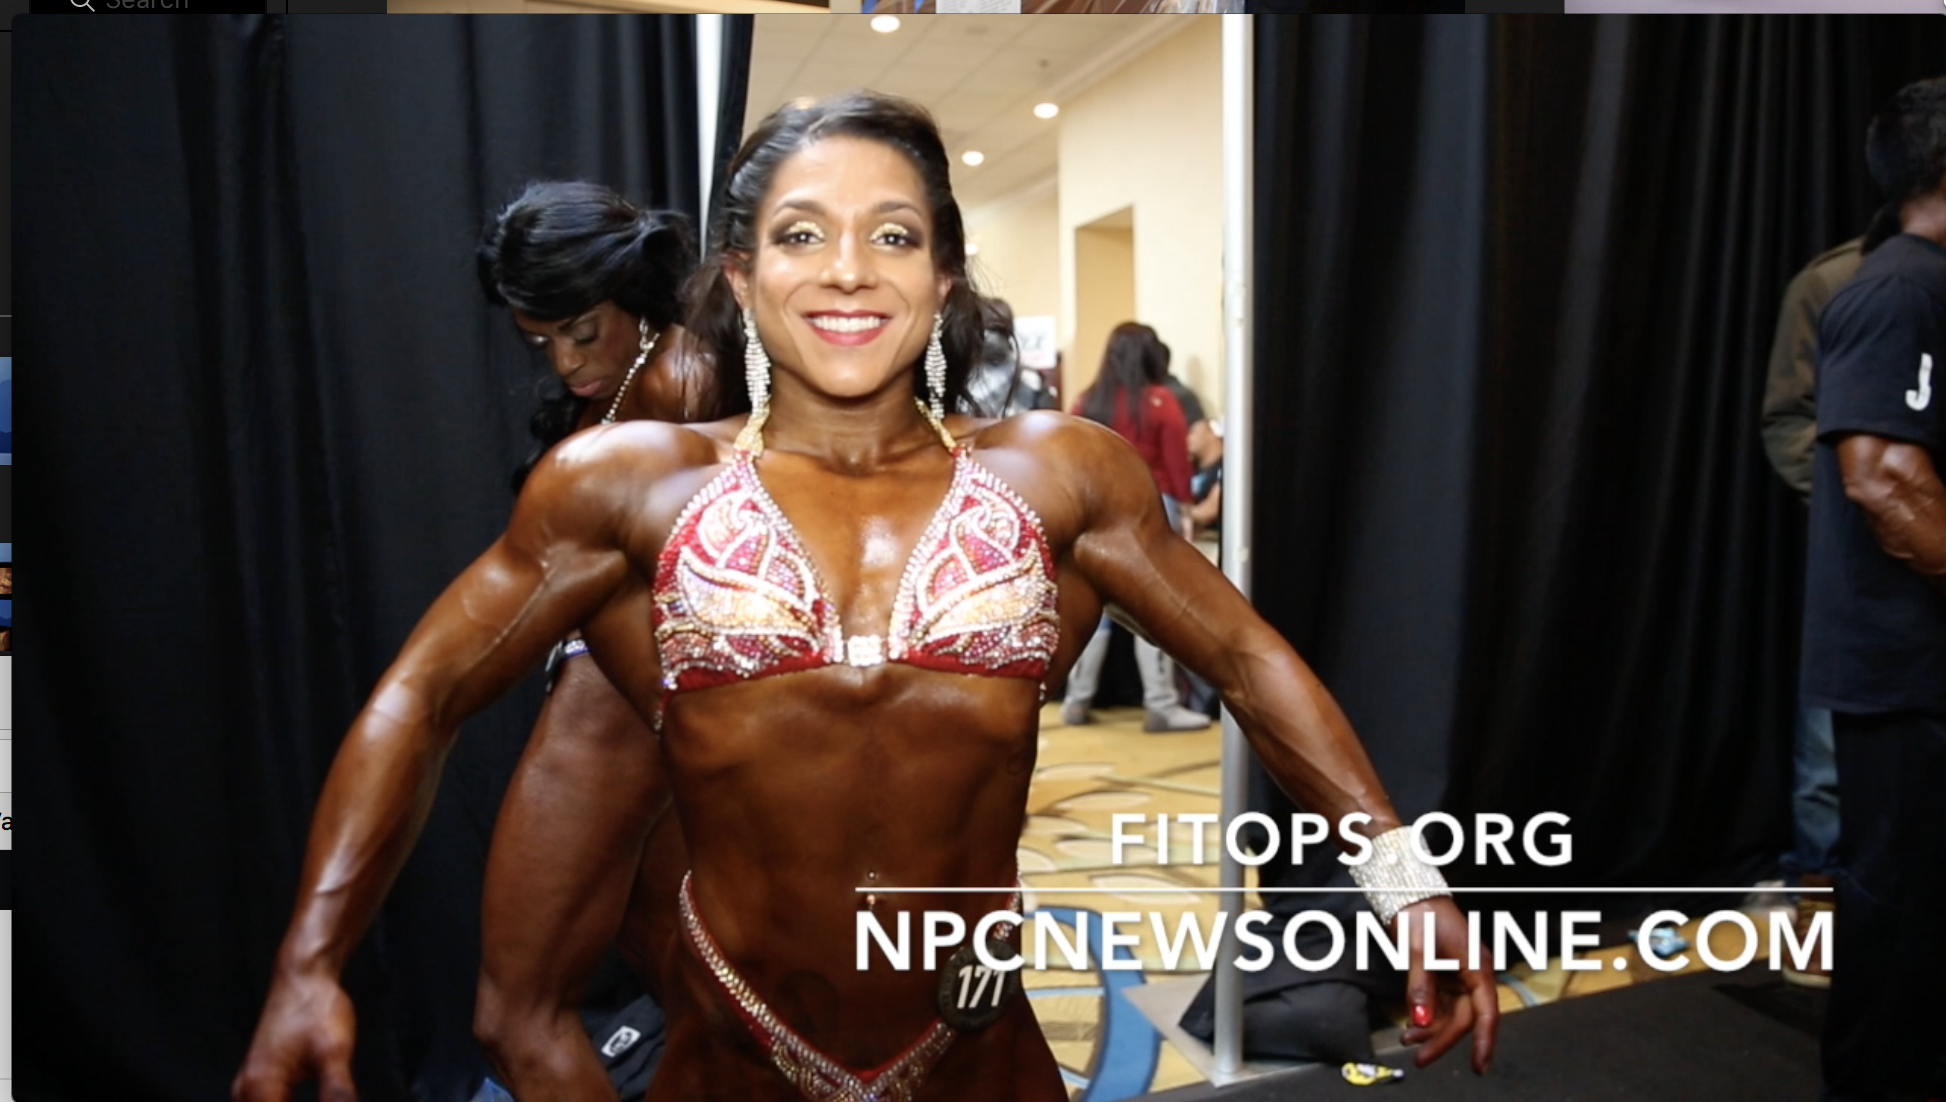 2017 NPC EASTERN USA WOMEN'S PHYSIQUE BACKSTAGE VIDEO